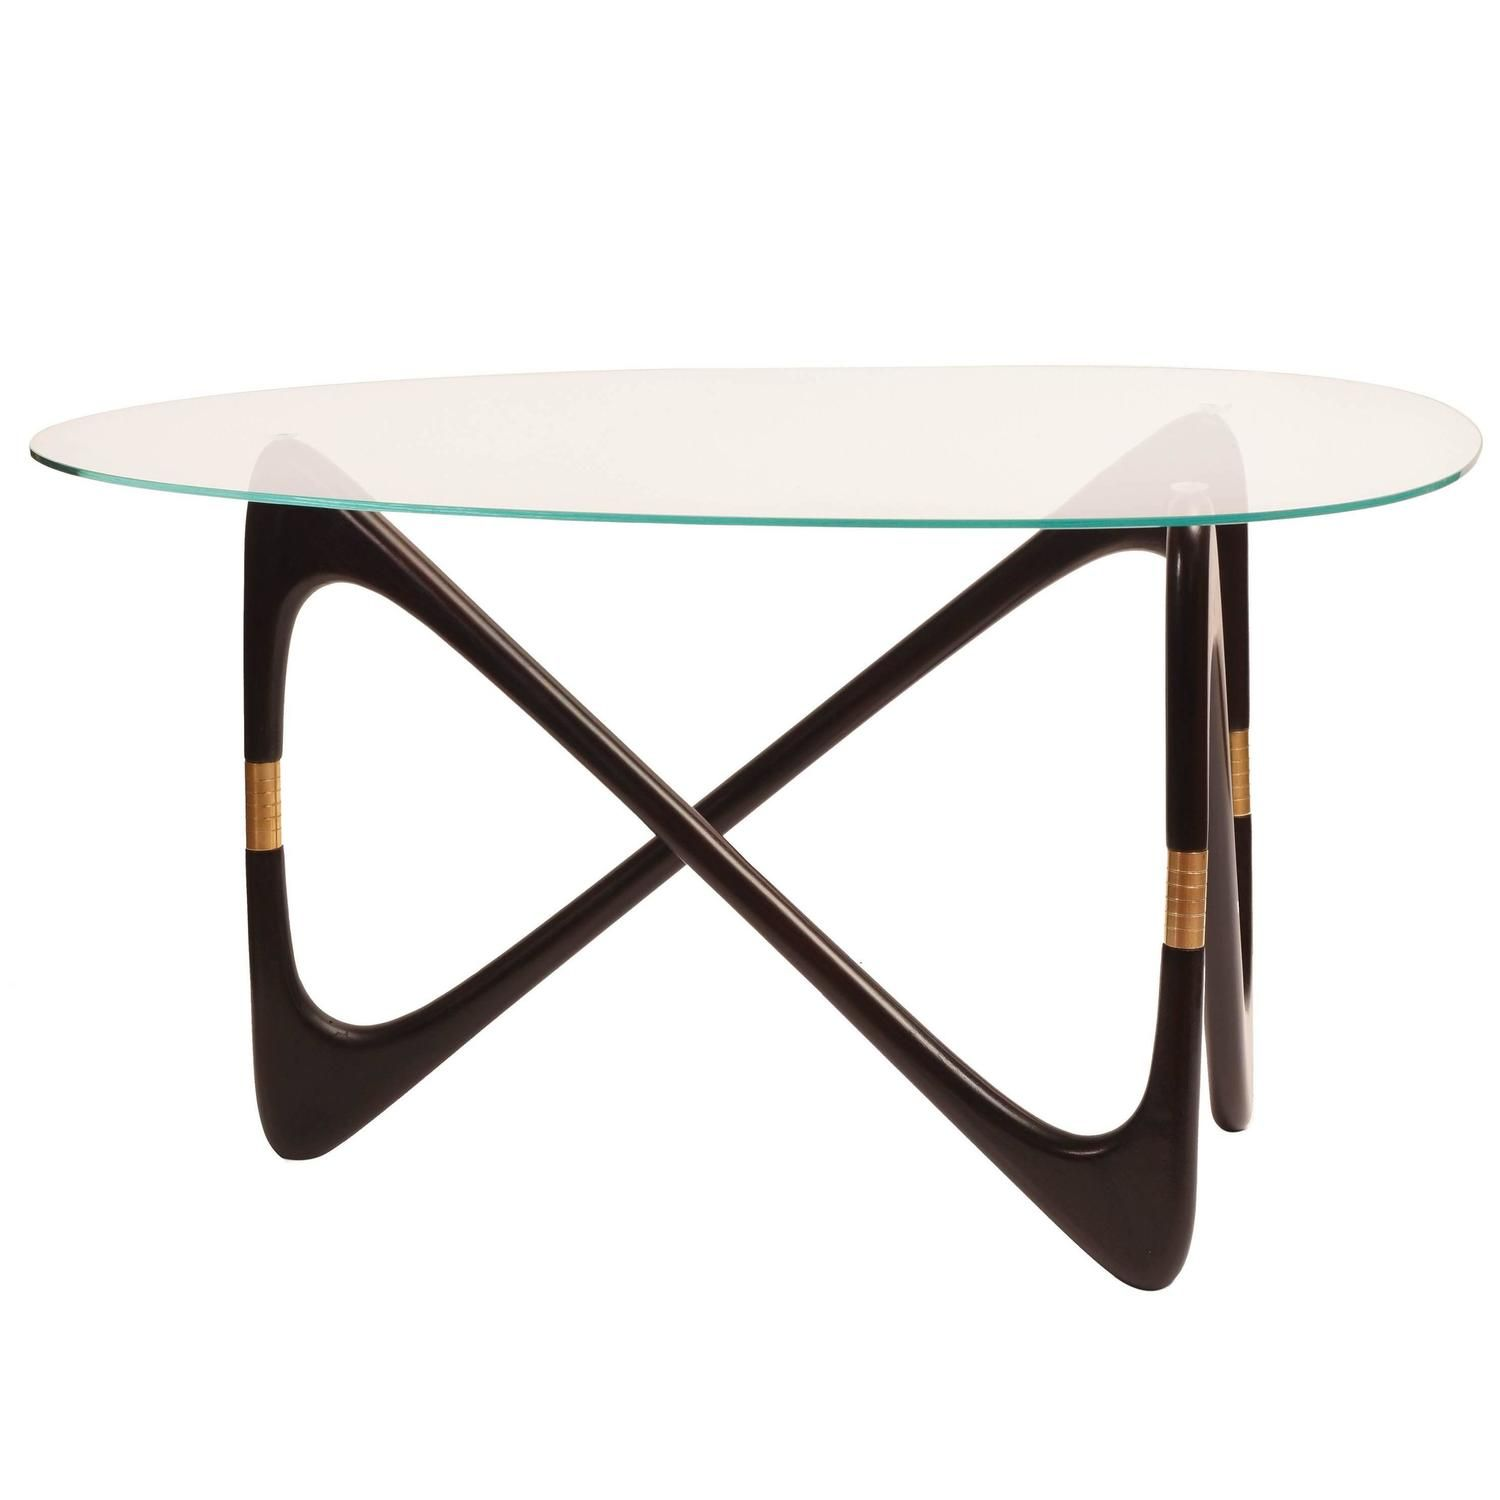 1950s Italian Triangular Coffee Table Attributed To Cesare Lacca Coffee Table Table Mid Century Dining Table [ 1500 x 1500 Pixel ]